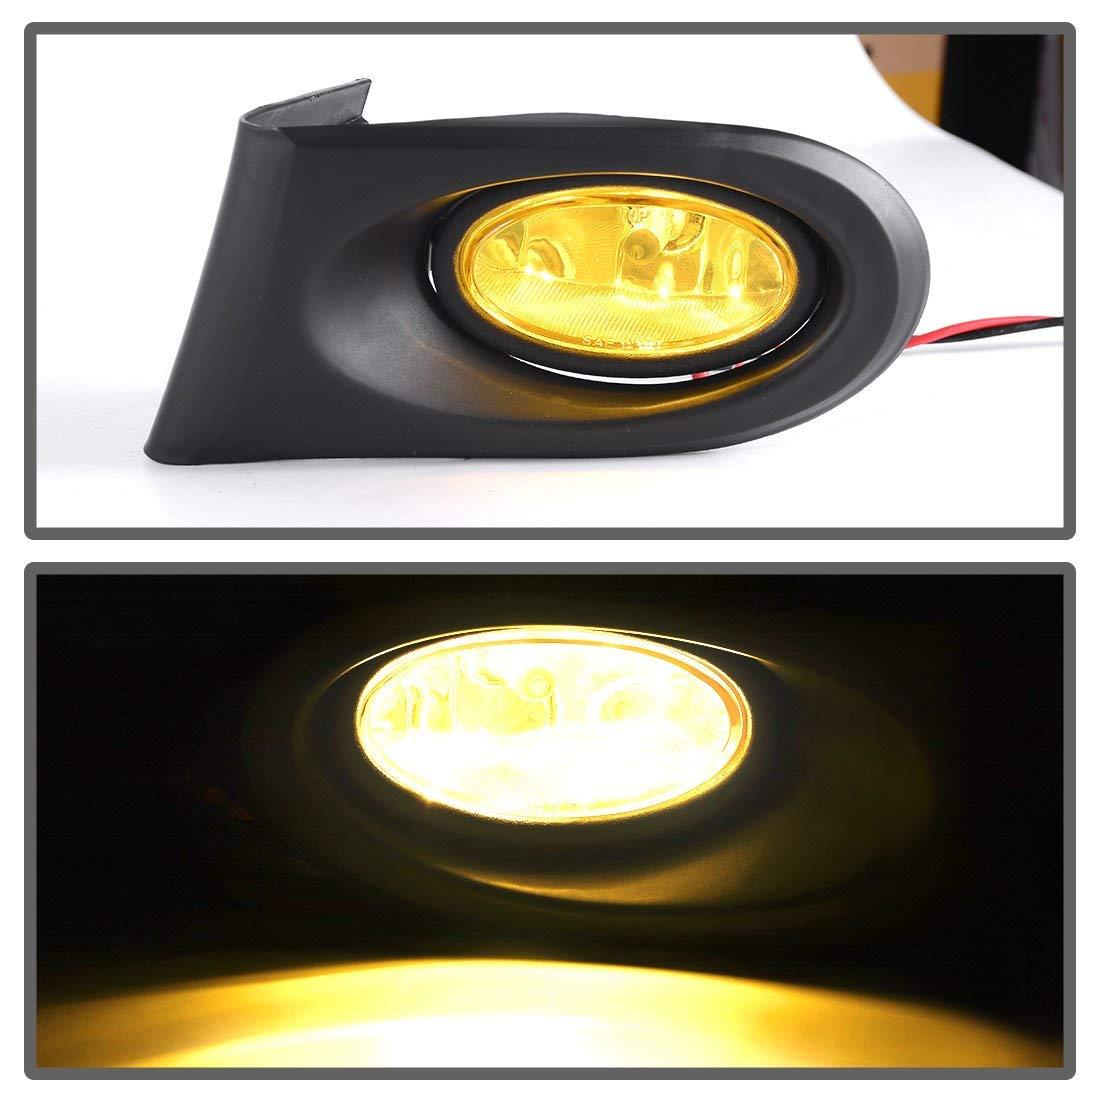 hight resolution of fog lights for acura rsx 2002 2003 2004 fog lights real glass yellow lens with bulbs wiring harness 1 year warranty walmart com